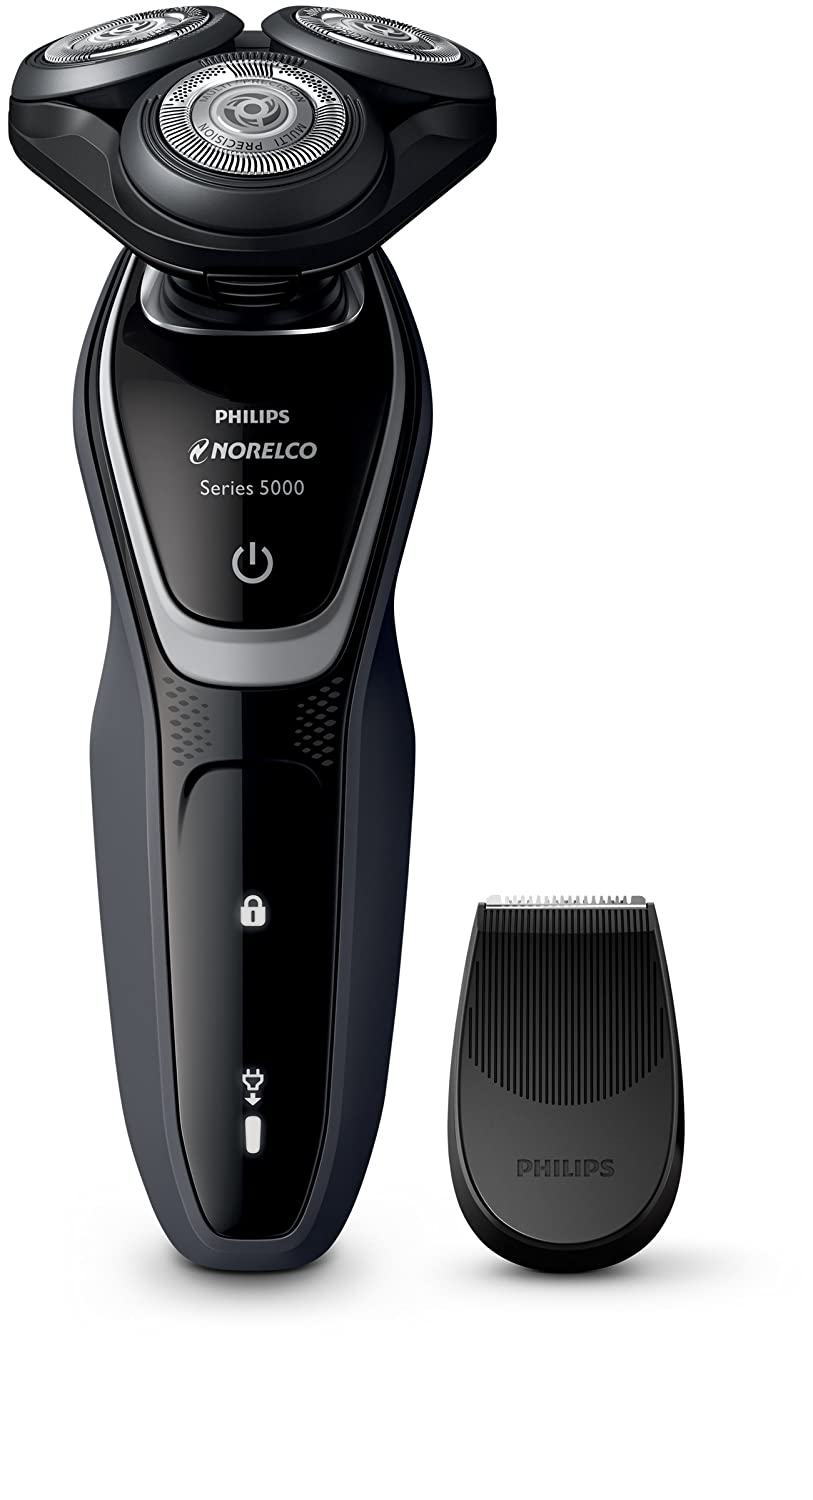 Philips Norelco Electric Shaver 5100 Wet with Dry P 81 S5210 40% OFF Cheap Sale lowest price